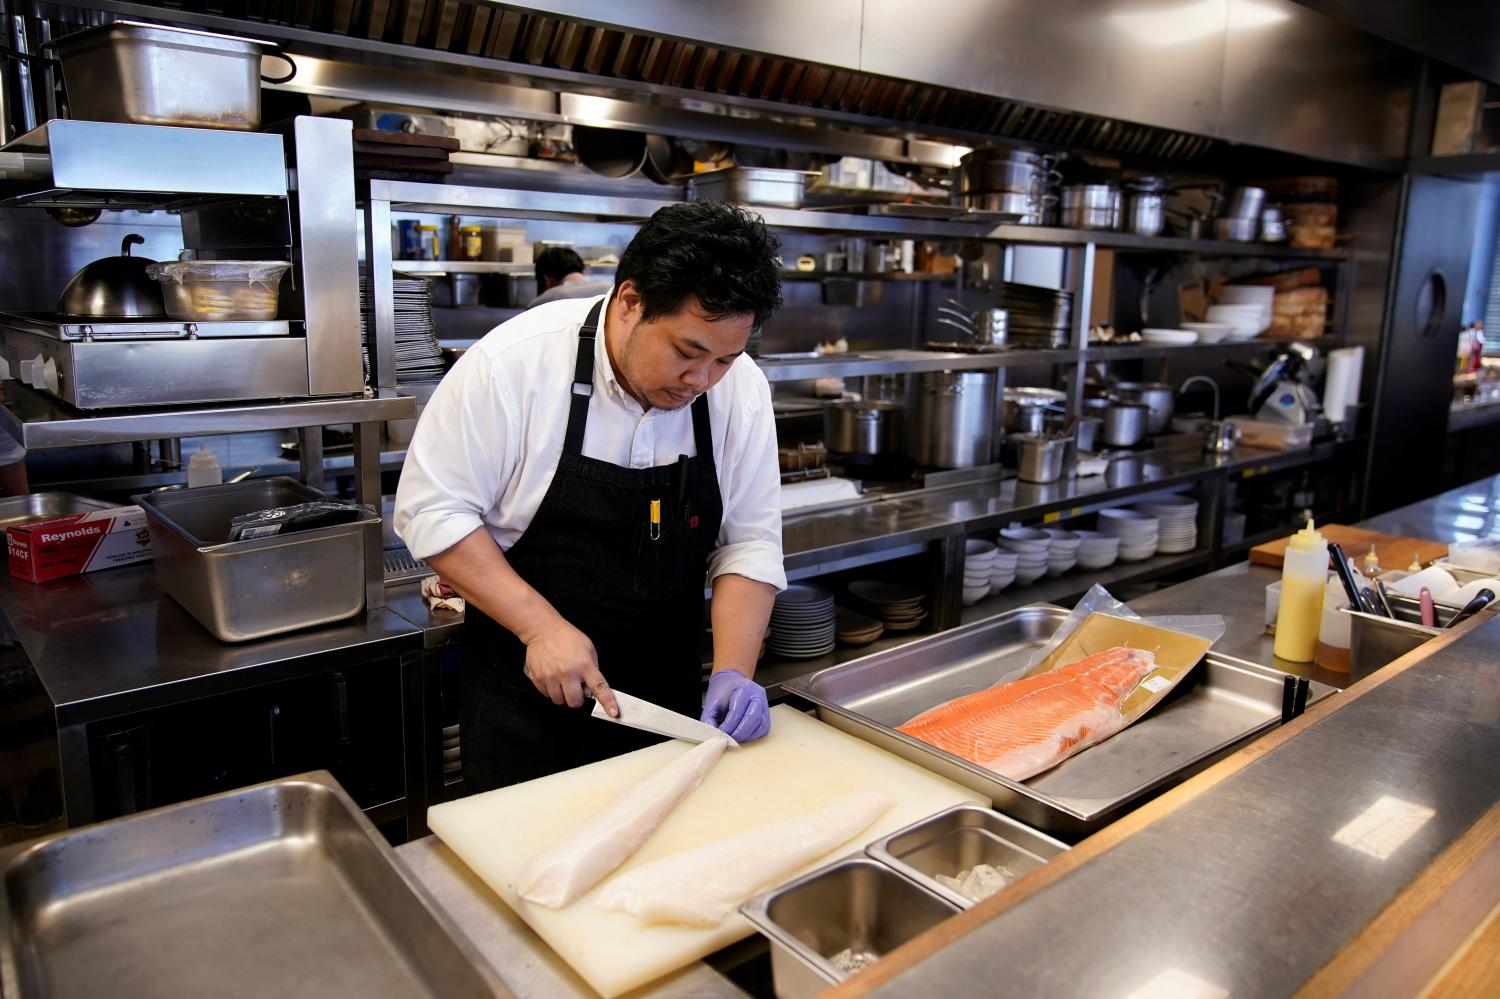 Chef and owner Austin Hu prepares frozen cod fish and salmon at Heritage by Madison restaurant in Shanghai.